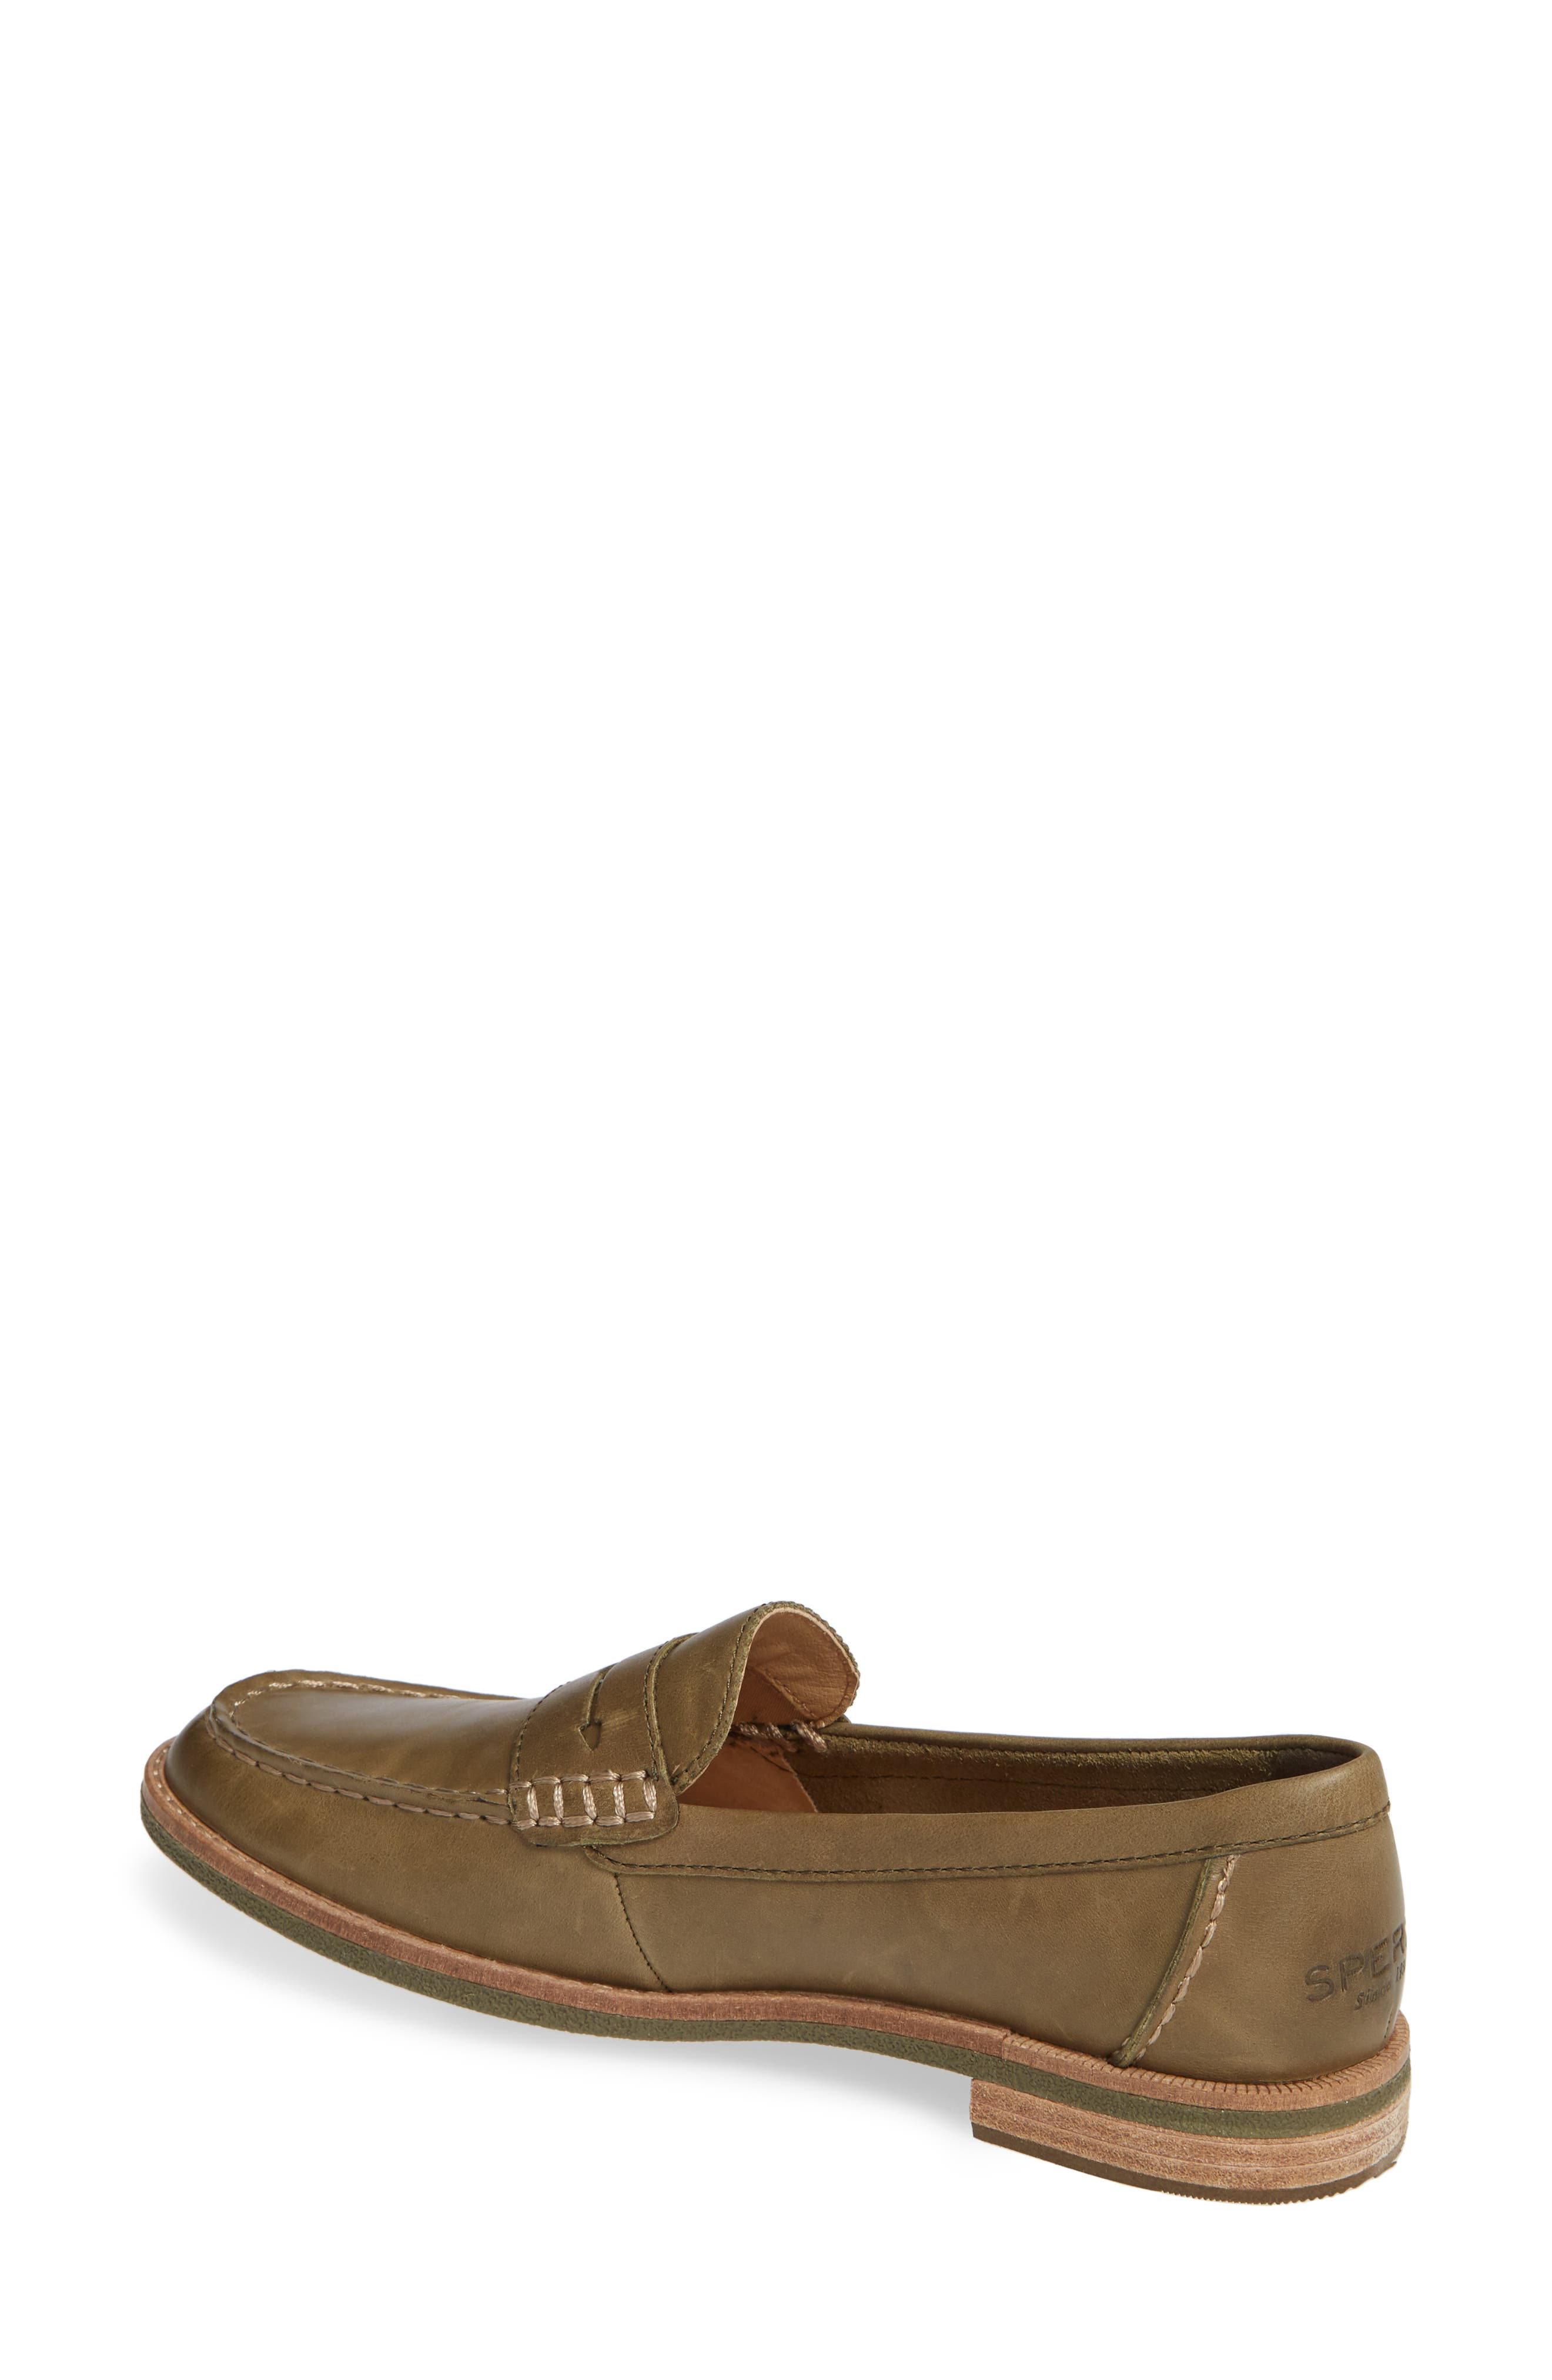 Seaport Penny Loafer,                             Alternate thumbnail 2, color,                             OLIVE LEATHER